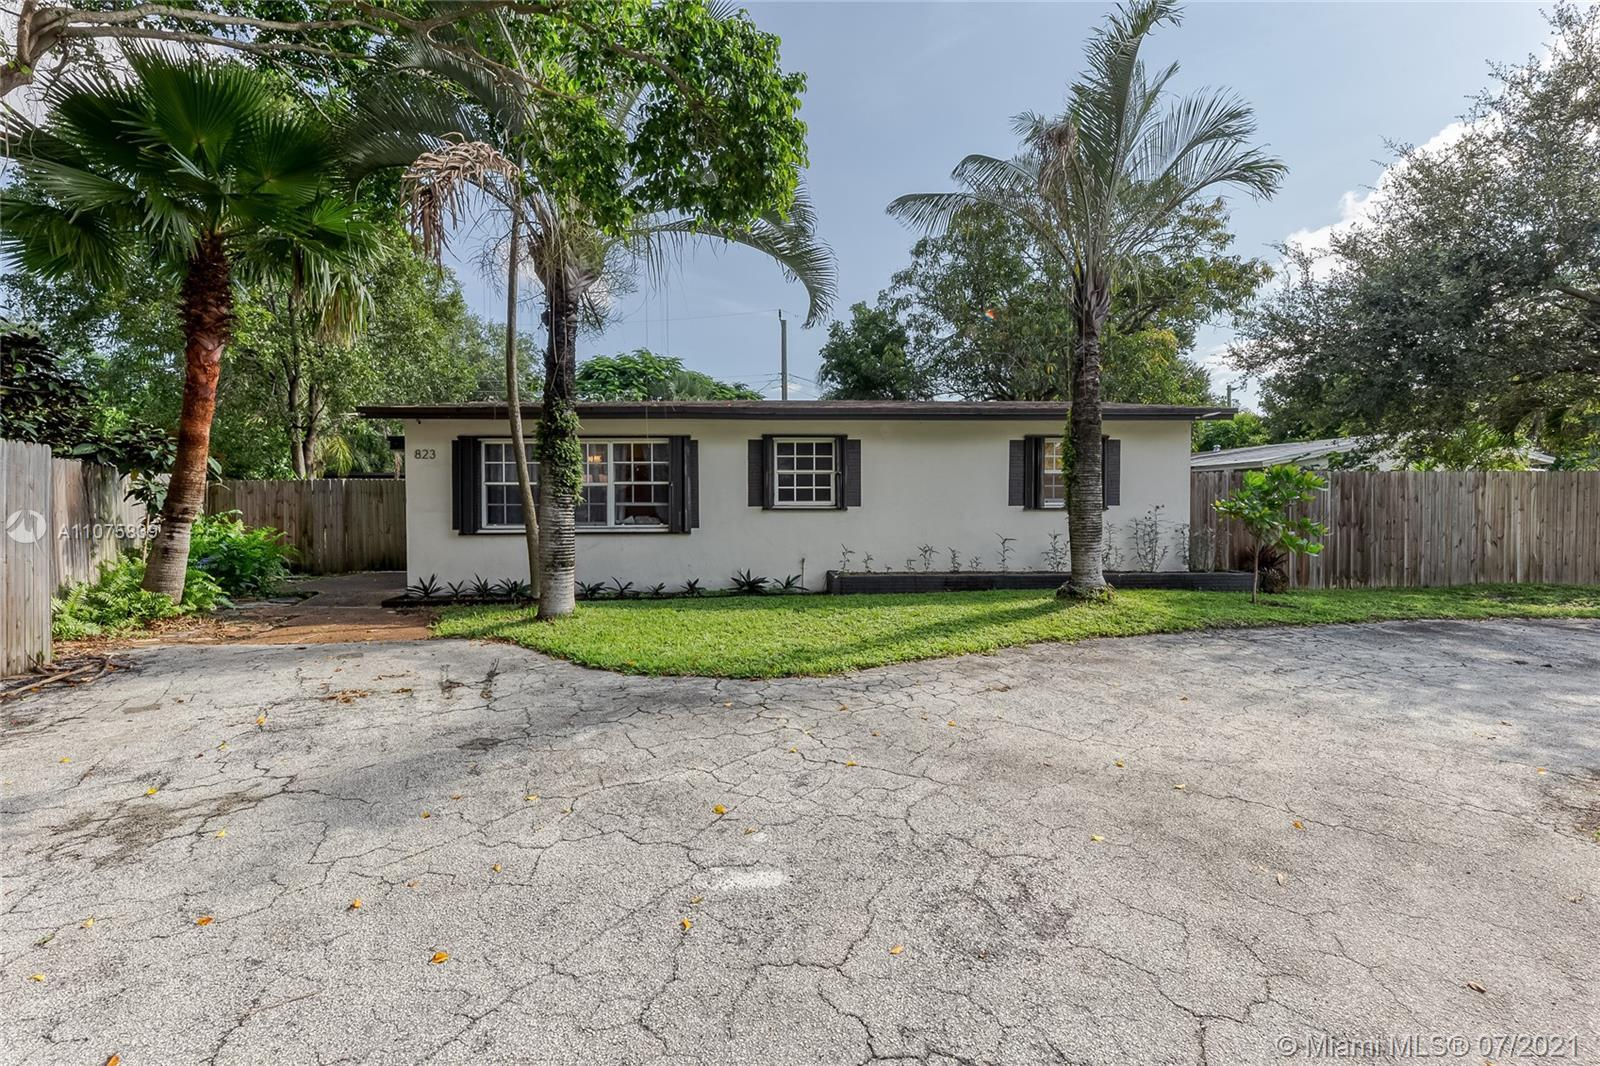 TURNKEY 2/1 in Ft. Lauderdale minutes to FLL Airport, Downtown, Major Highways, Beaches and Nightlif